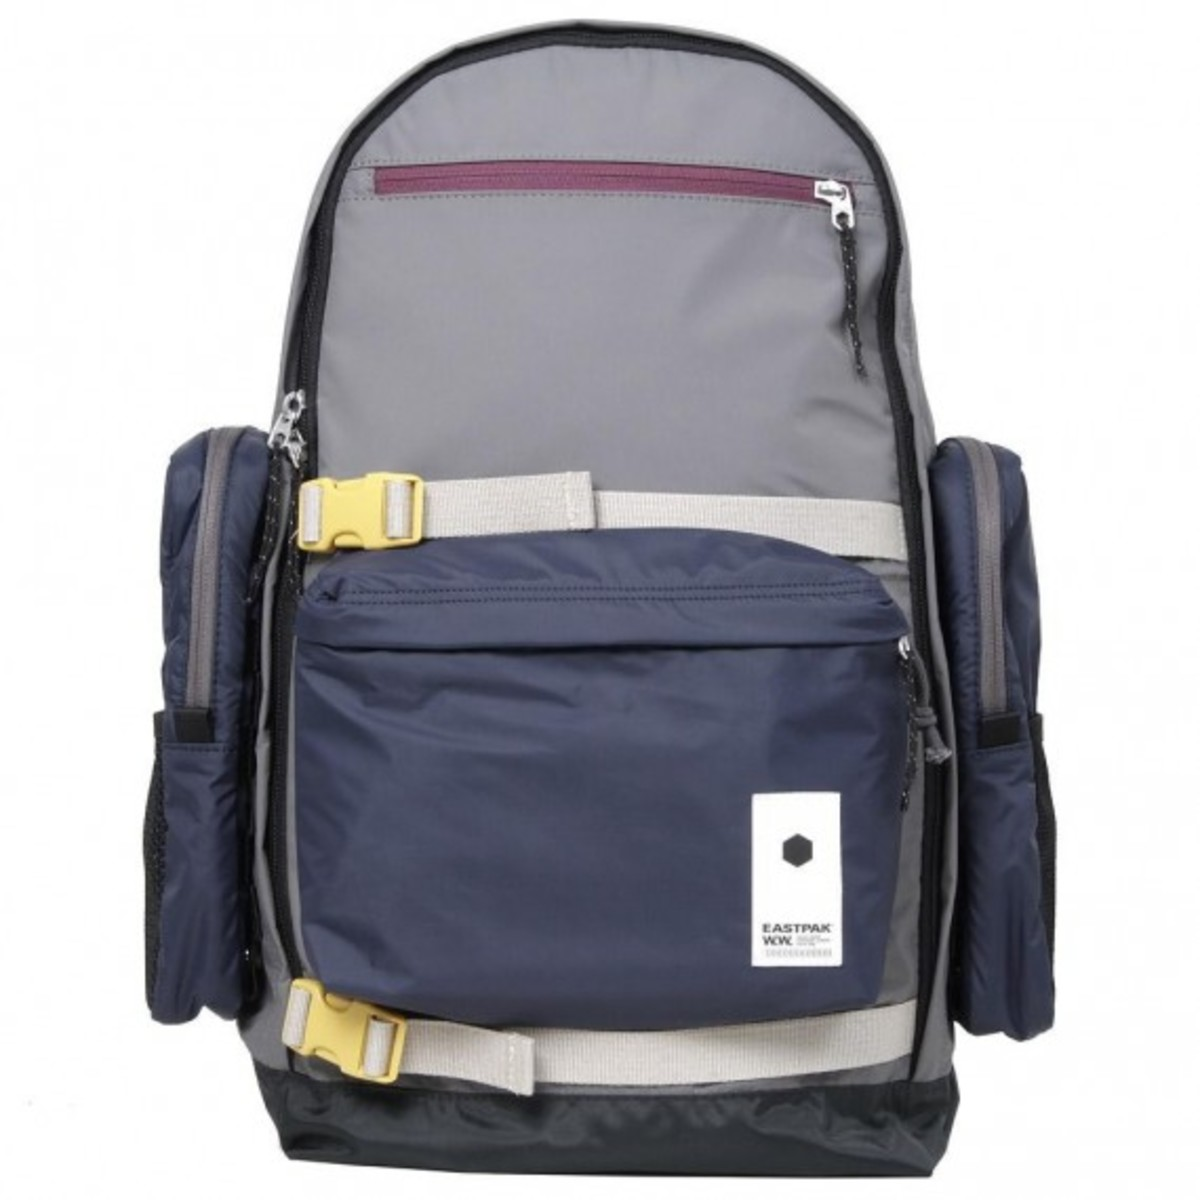 wood-wood-eastpak-collection-available-02